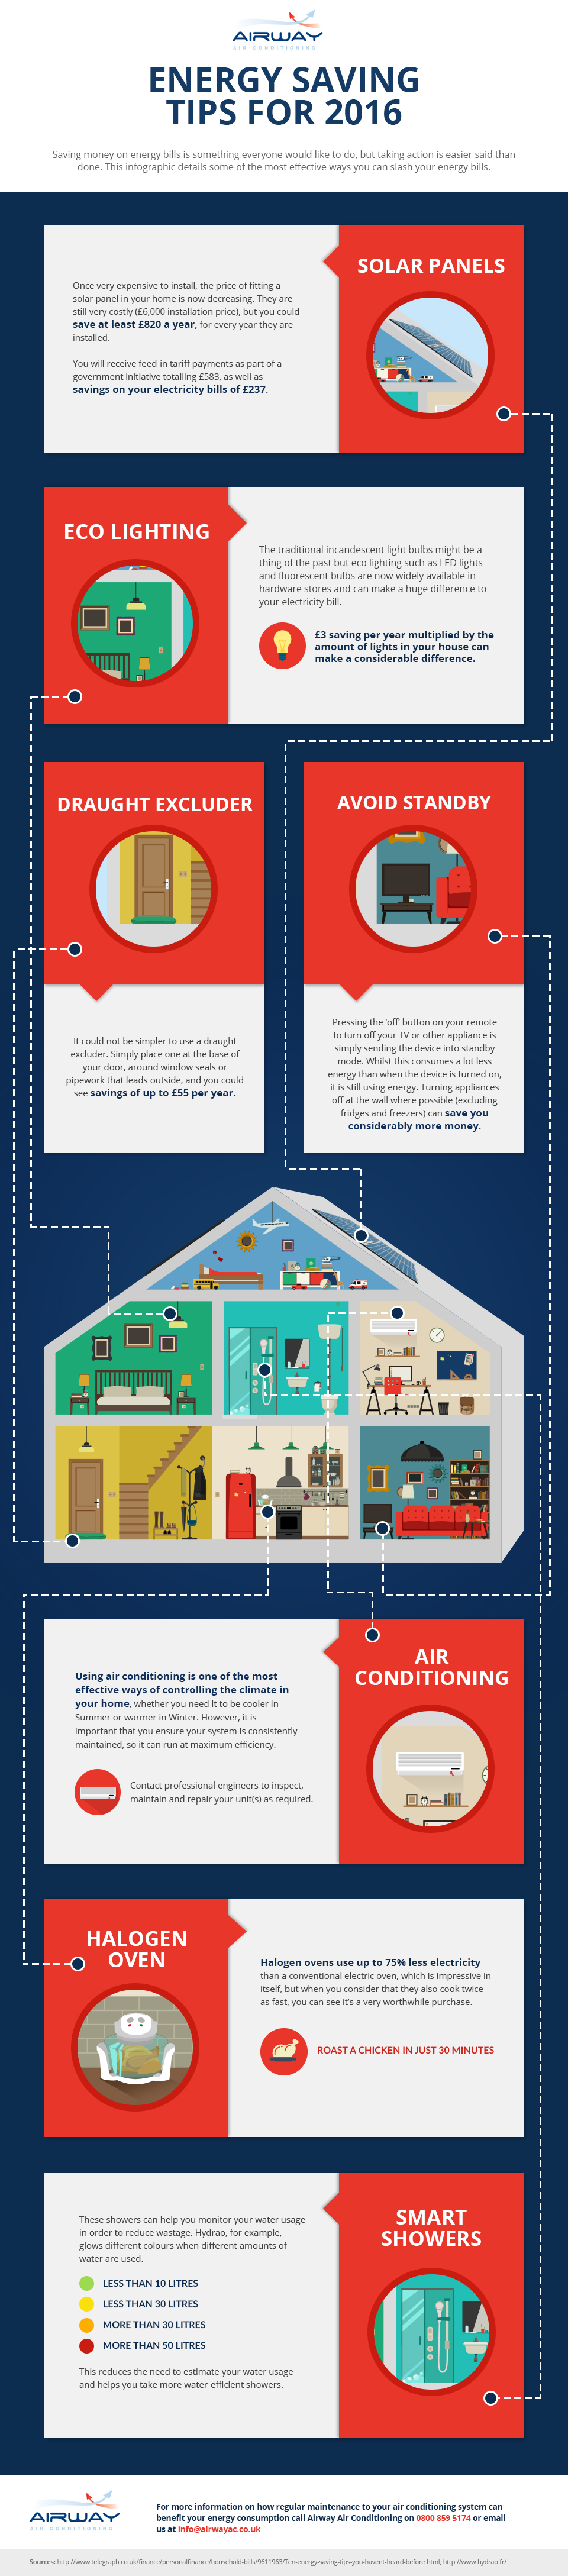 saving energy 2016 infographic